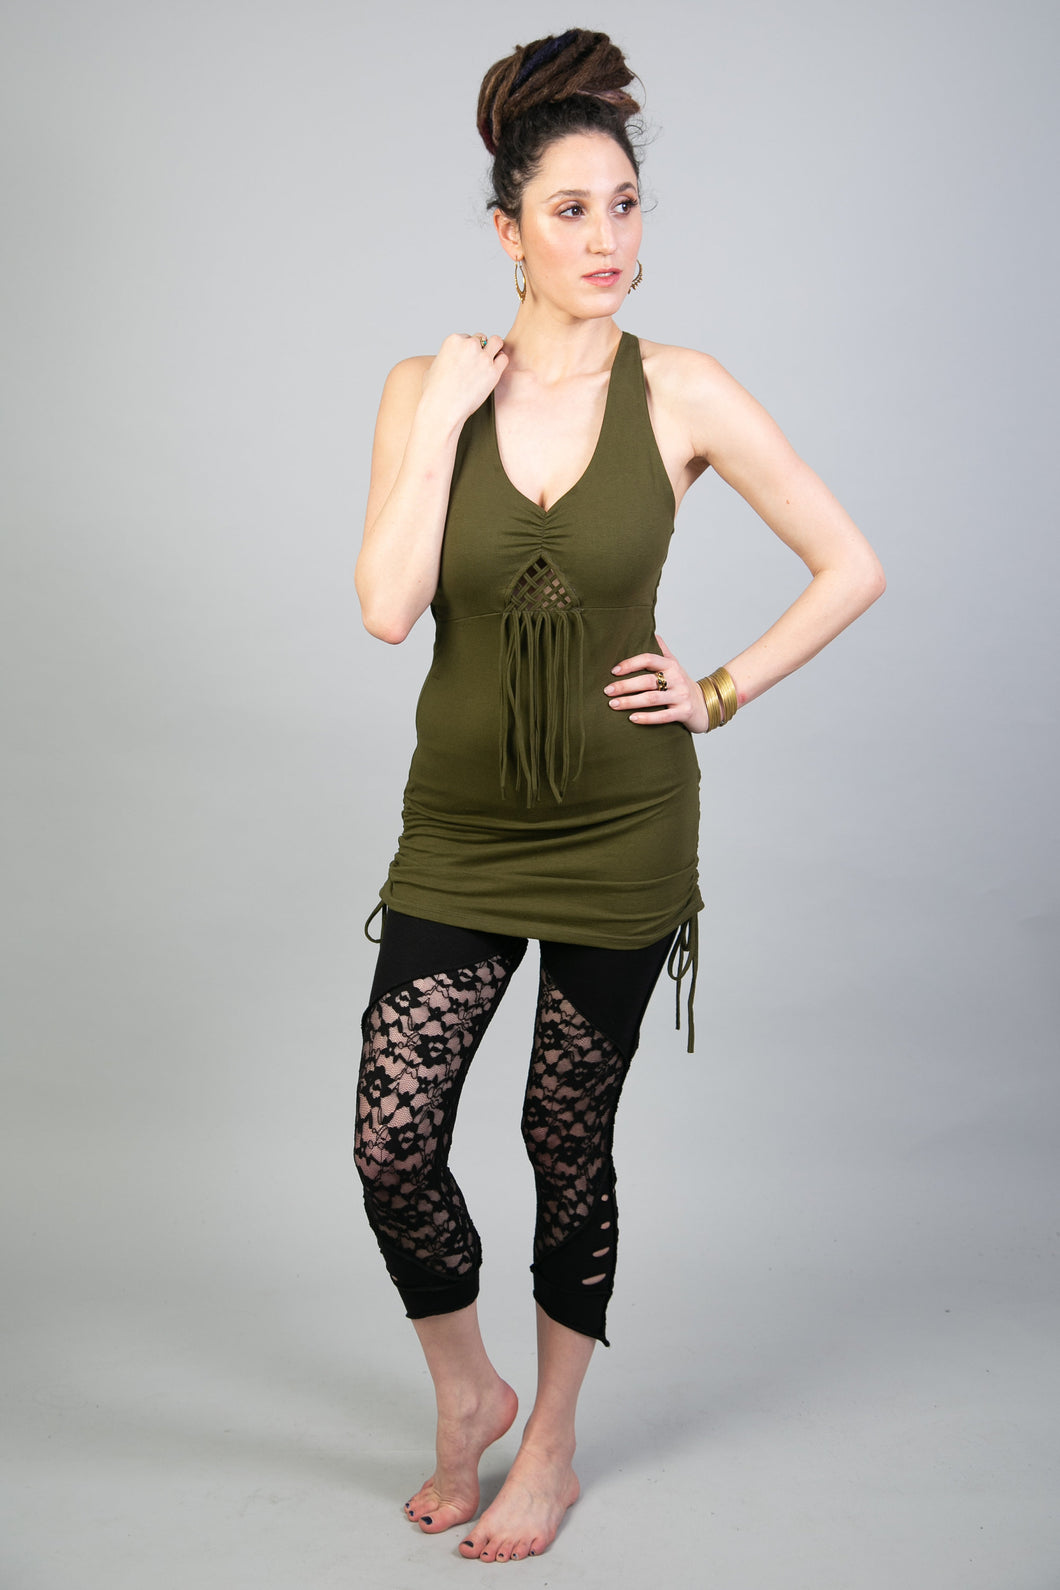 Olive Green Boho Chic Sexy Tunic Dress for Women | Little Dress with Sacred Geometry Jewelry for Summer Festivals and Many More…